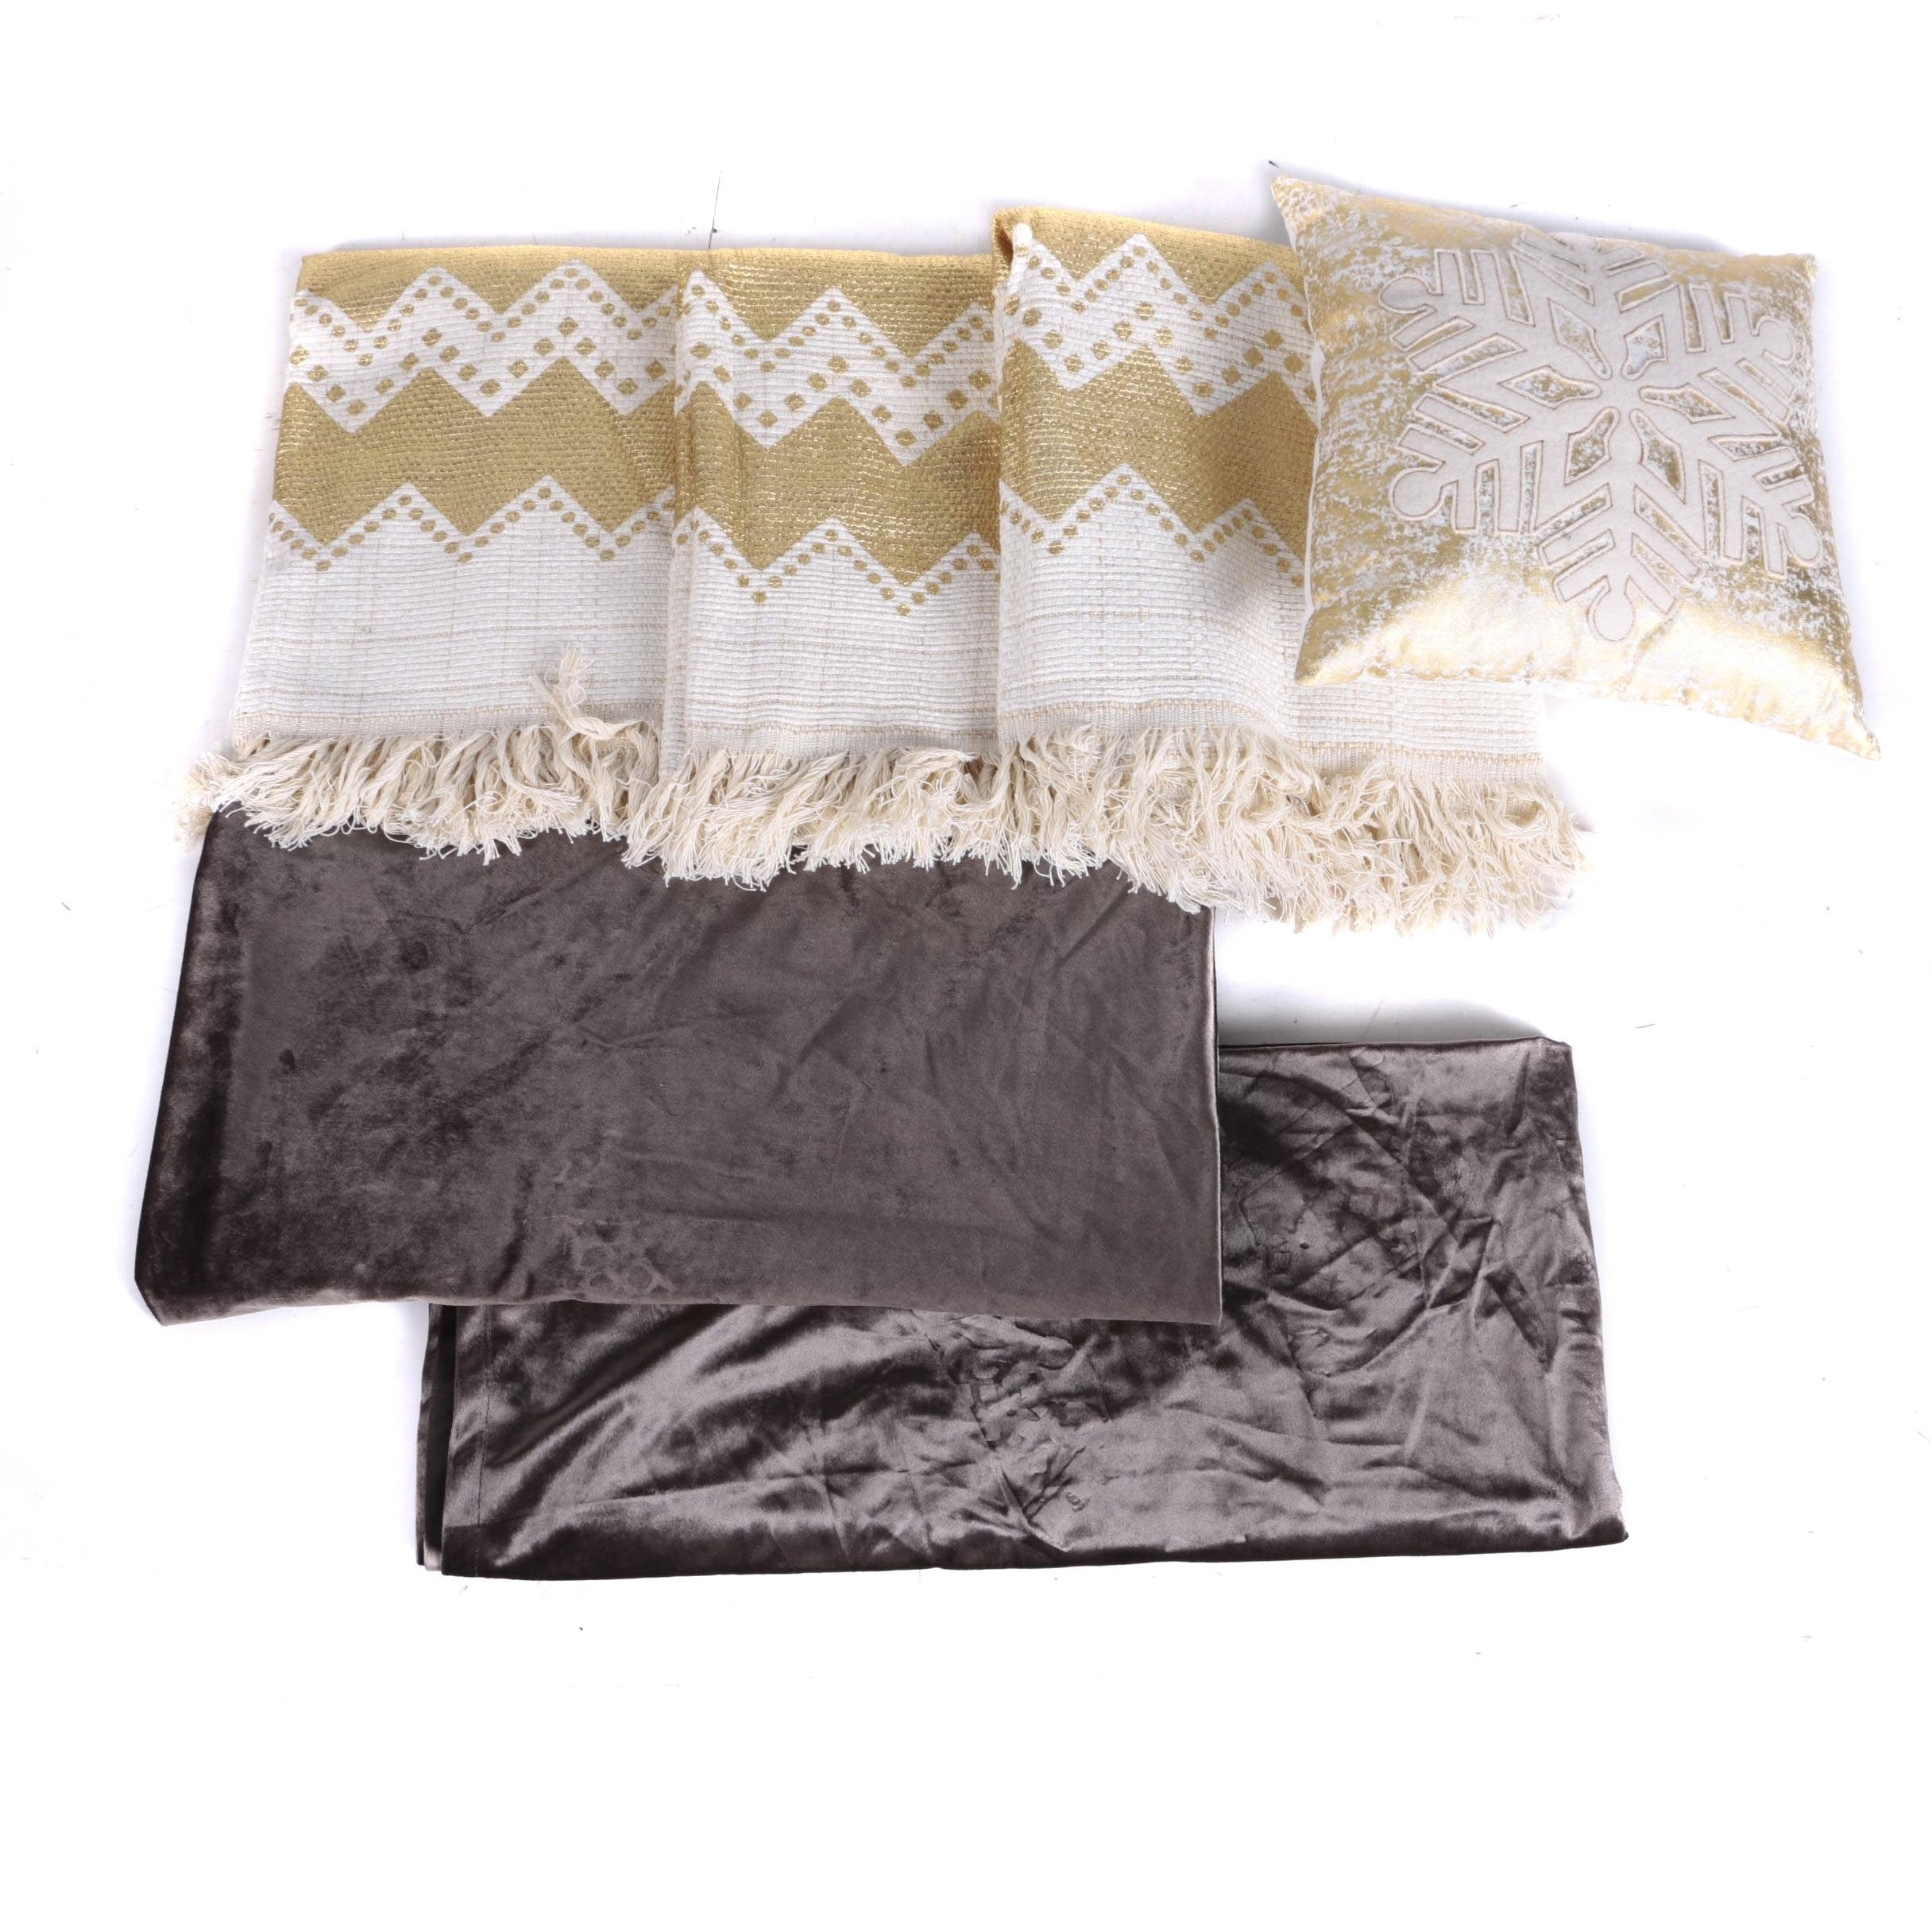 Snowflake Pillow and Other Linens